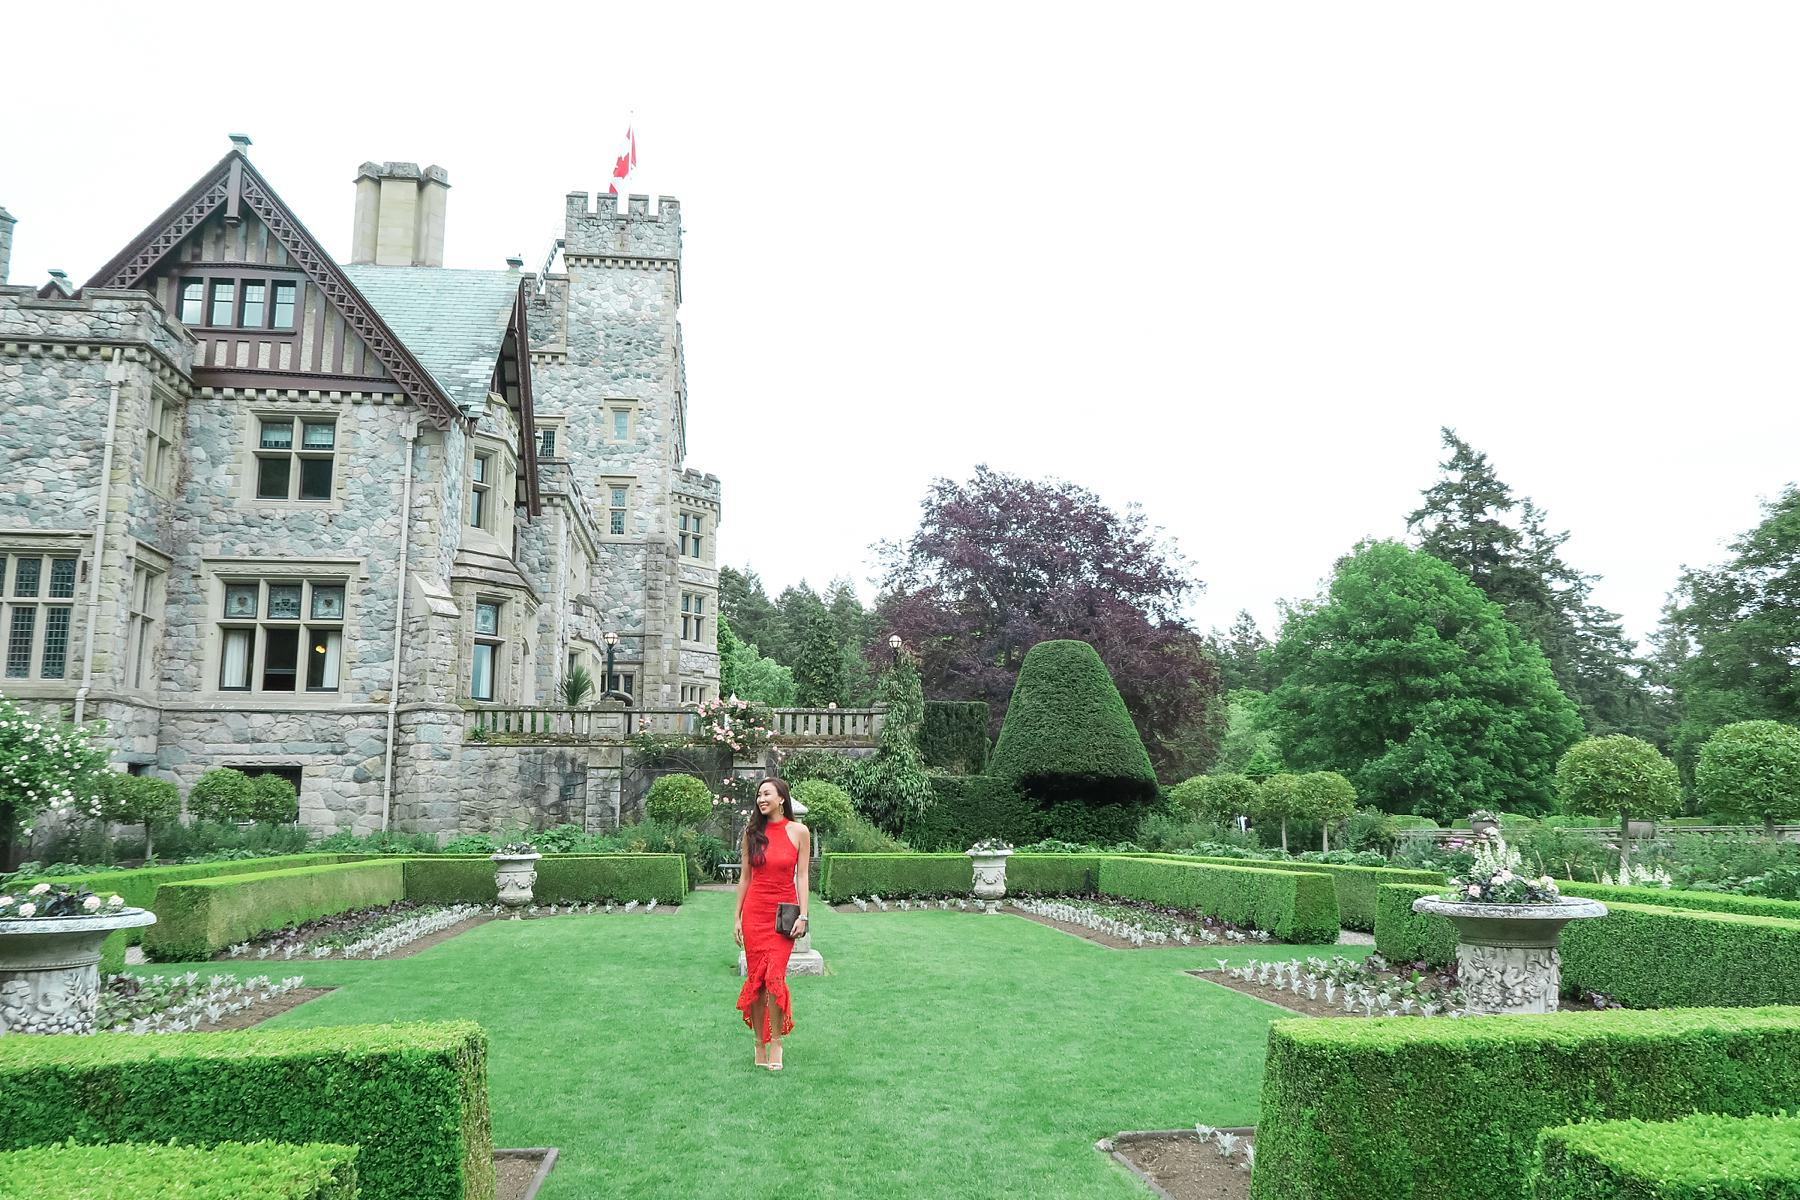 wedding at hatley castle wedding in Victoria Canada wearing a red lace dress like the emoji